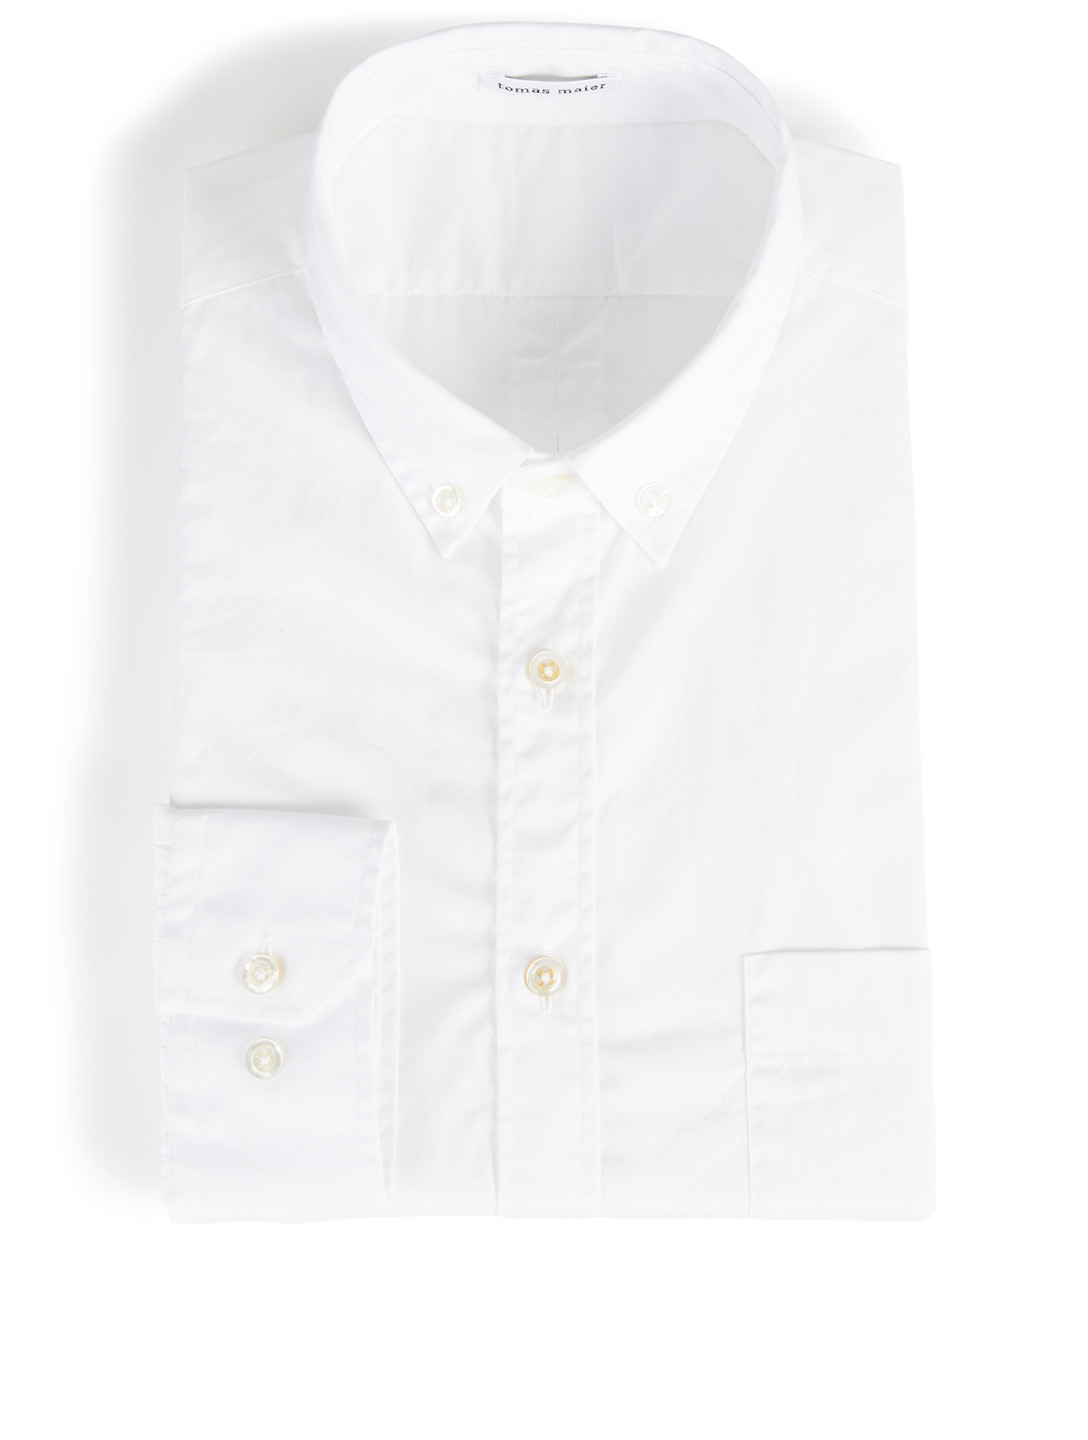 TOMAS MAIER Twisted Poplin Button-Down Shirt Men's White